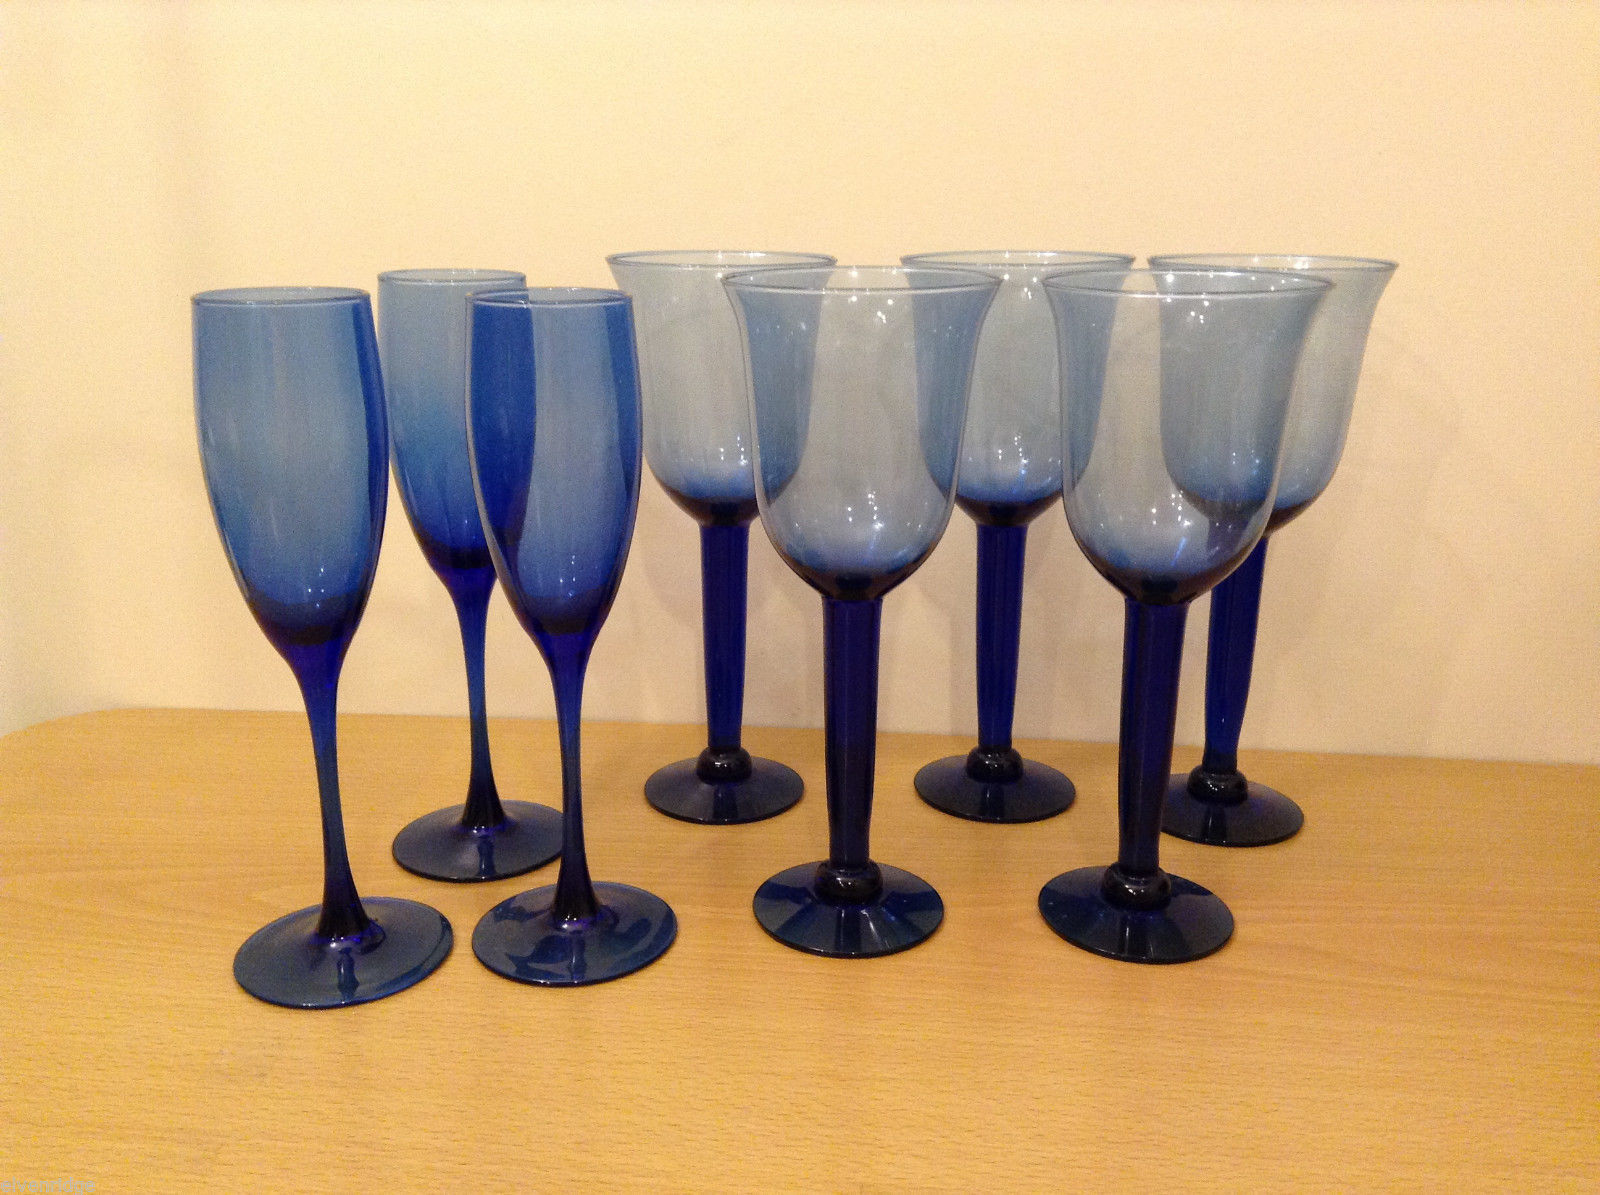 Vintage Cobalt Glassware: 5 Wine Glasses & 3 Champagne Flutes (Set of 8 Total)